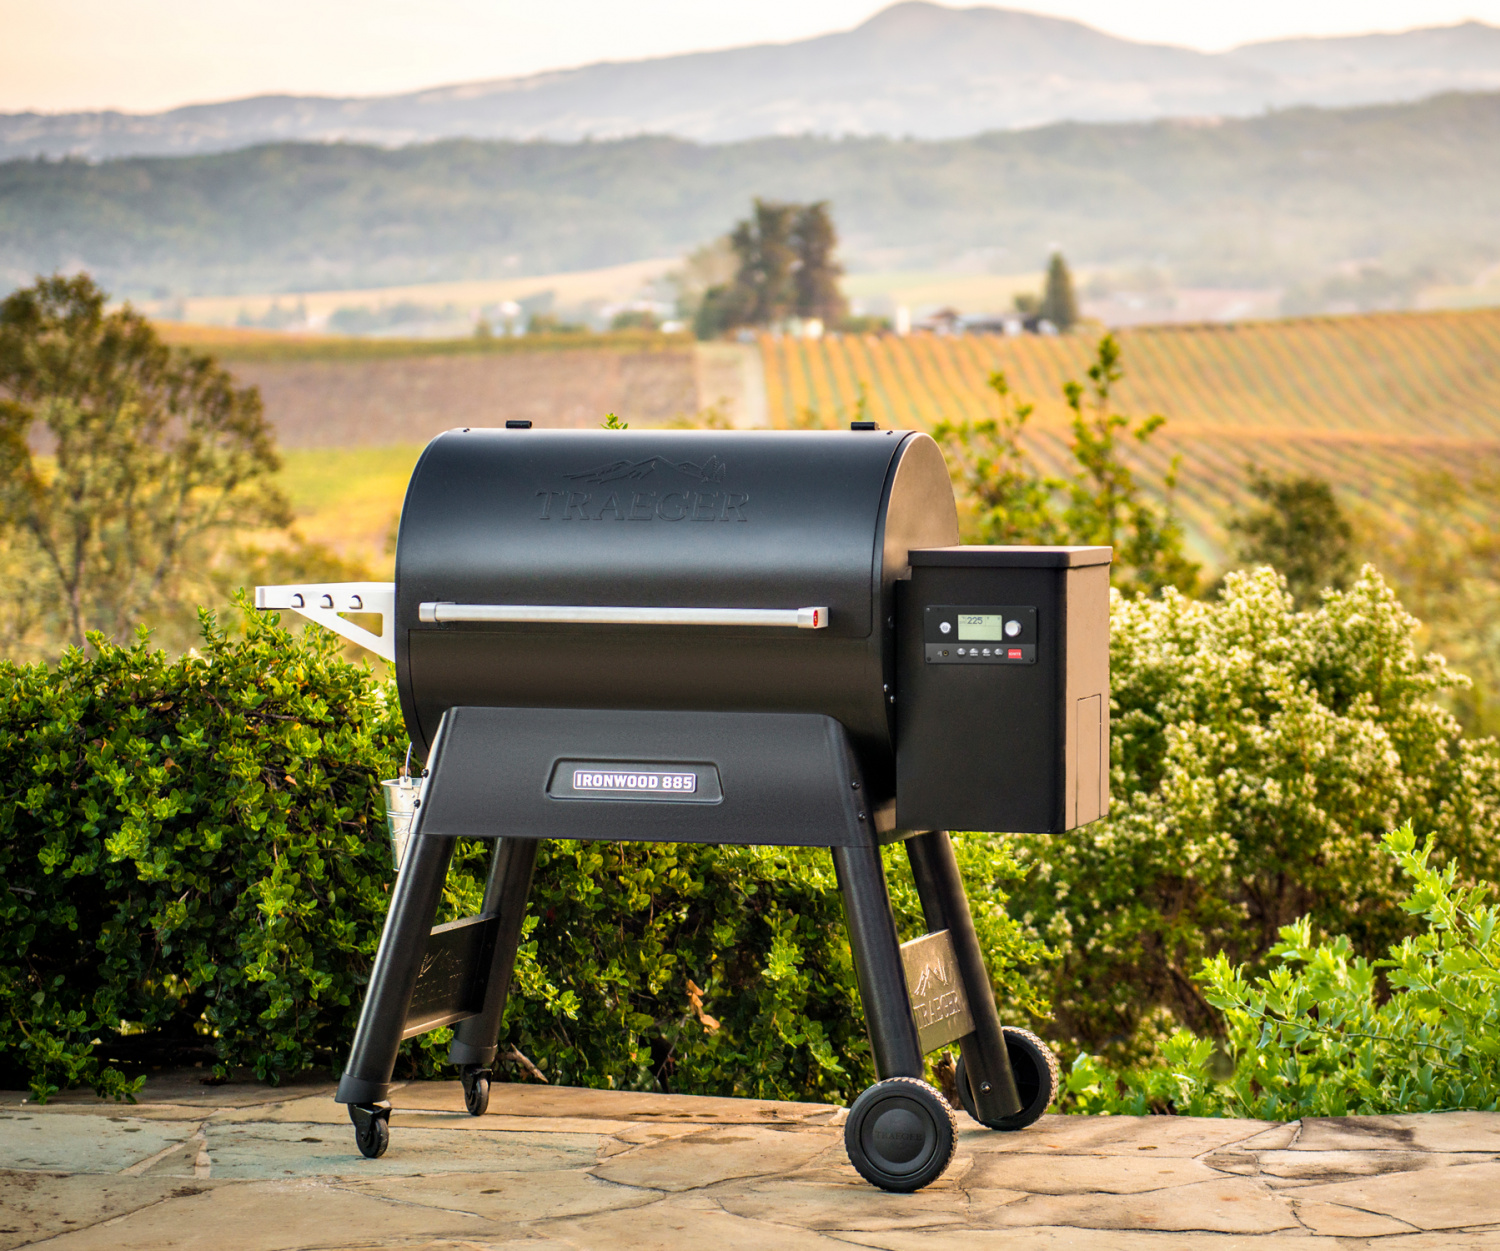 Win a Traeger Pro 575 Grill | A Traeger Grill against a scenic backdrop